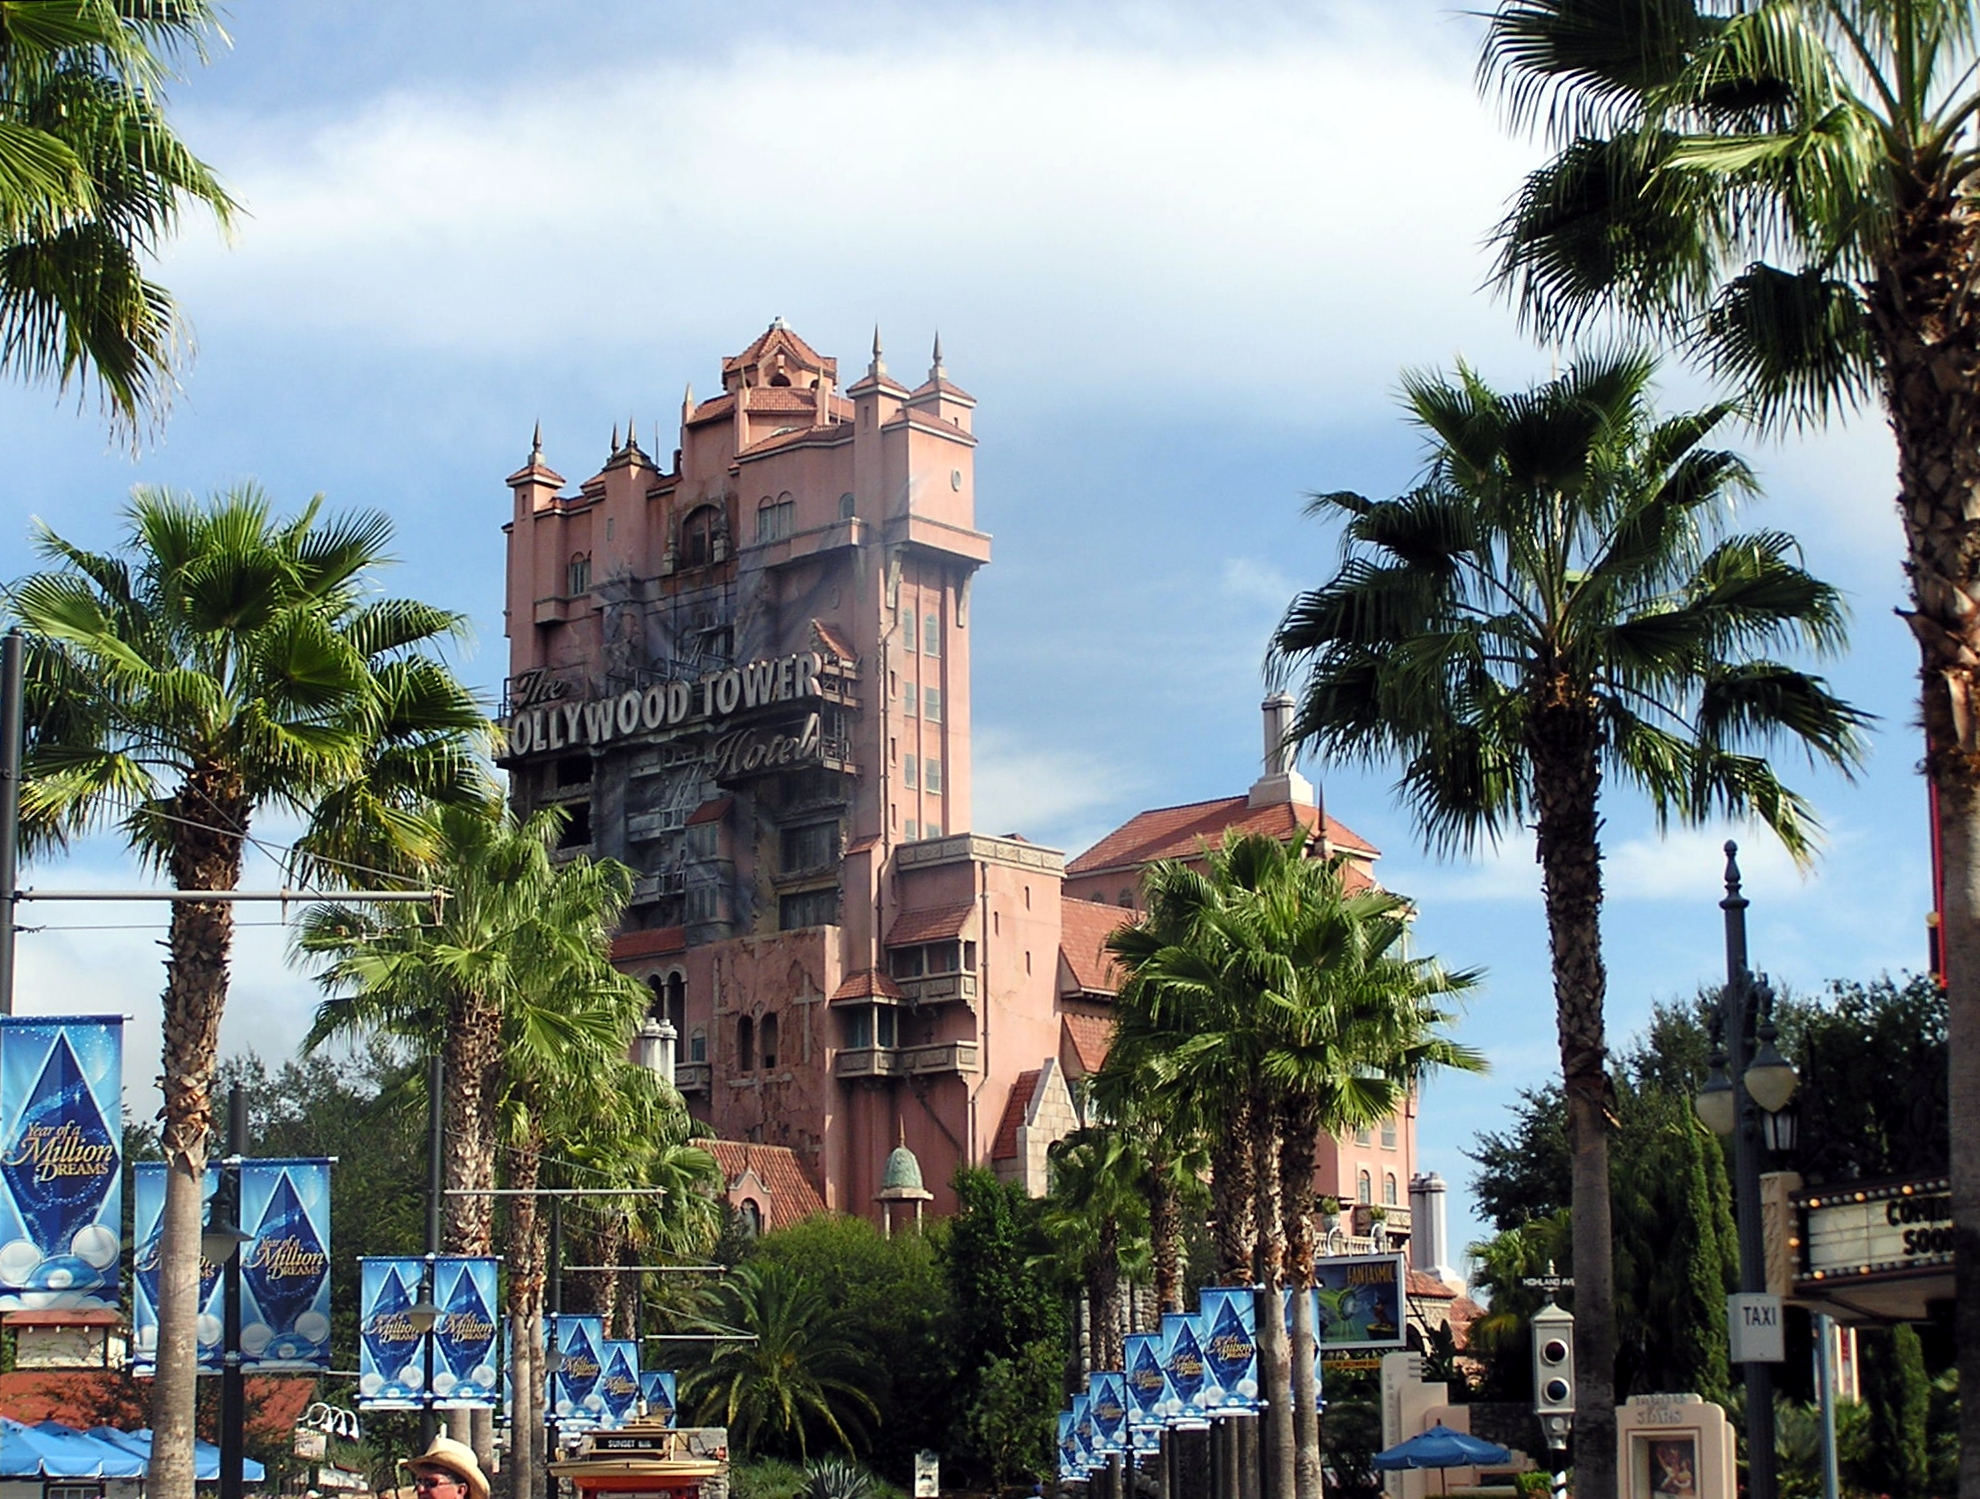 Jud's Disney Picture of the Day: The Boulevard of Dreams